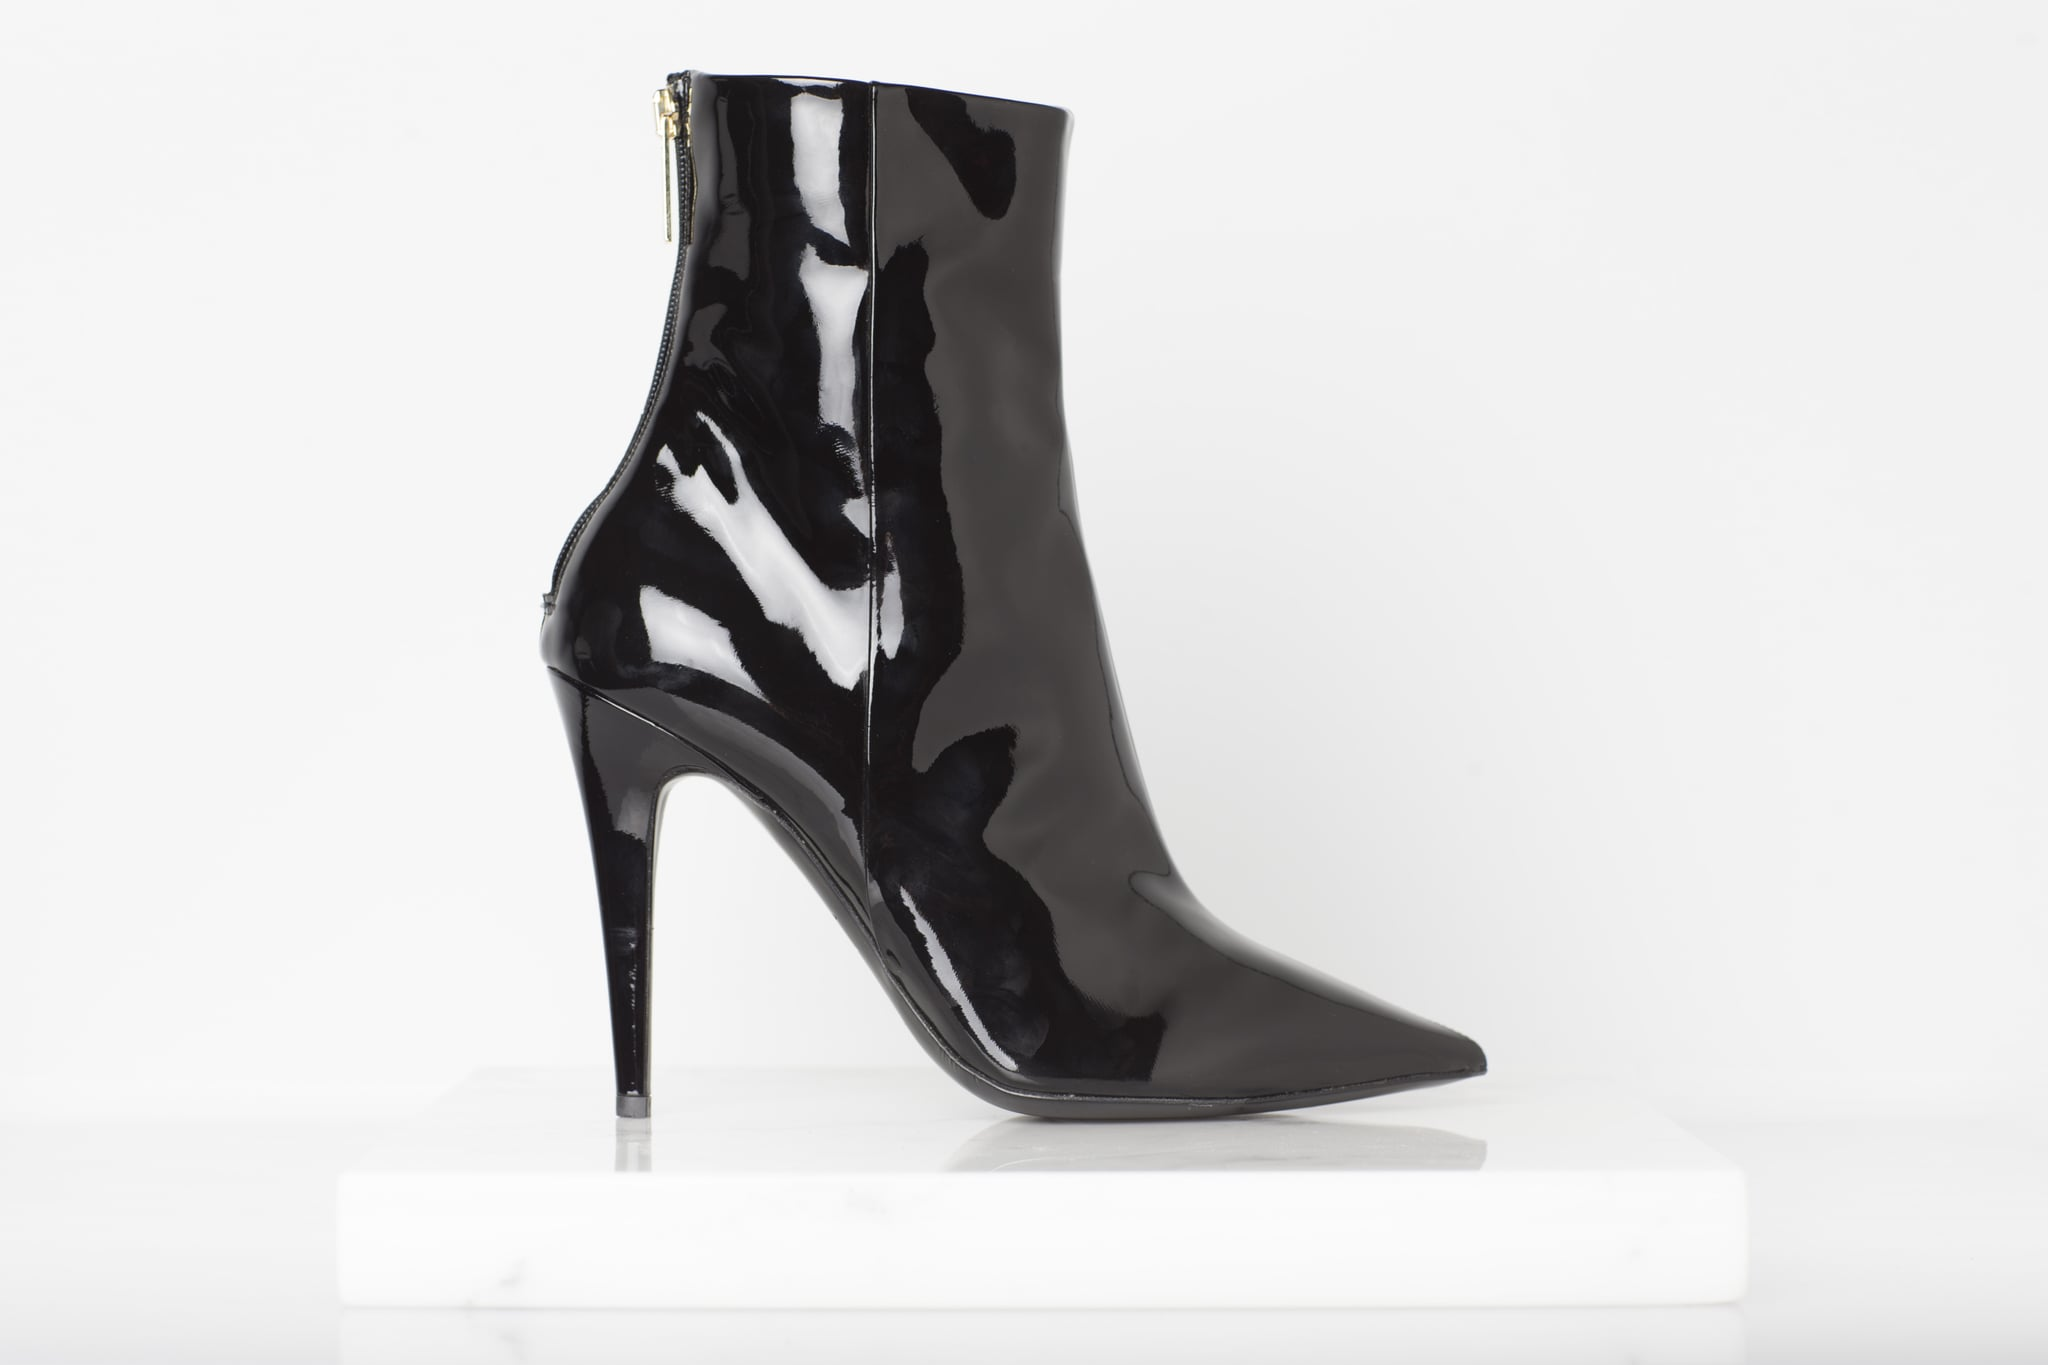 Excess Patent Ankle Boot in Black ($895) Photo courtesy of Tamara Mellon